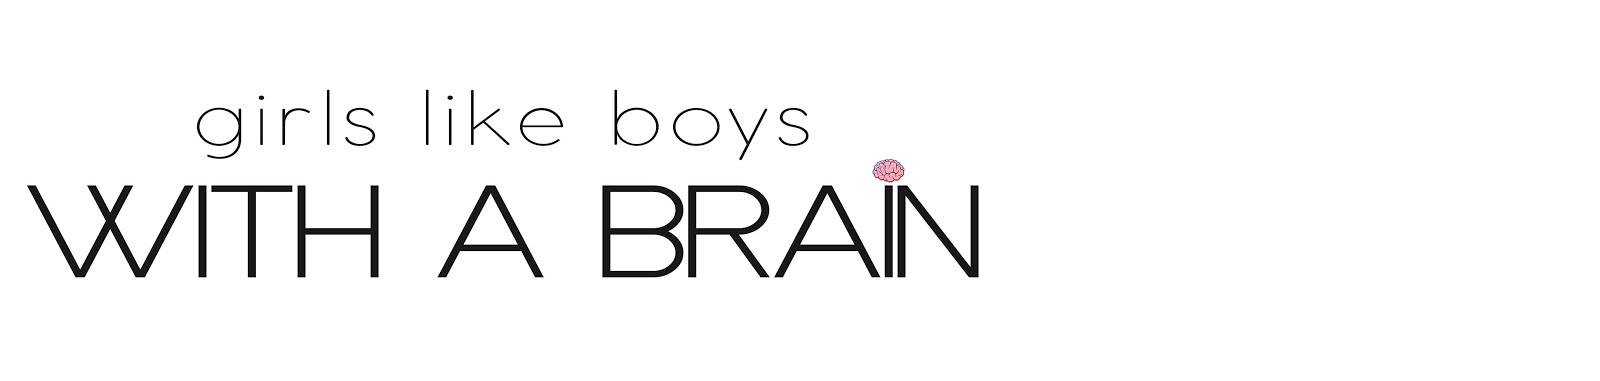 Girls Like Boys With a Brain